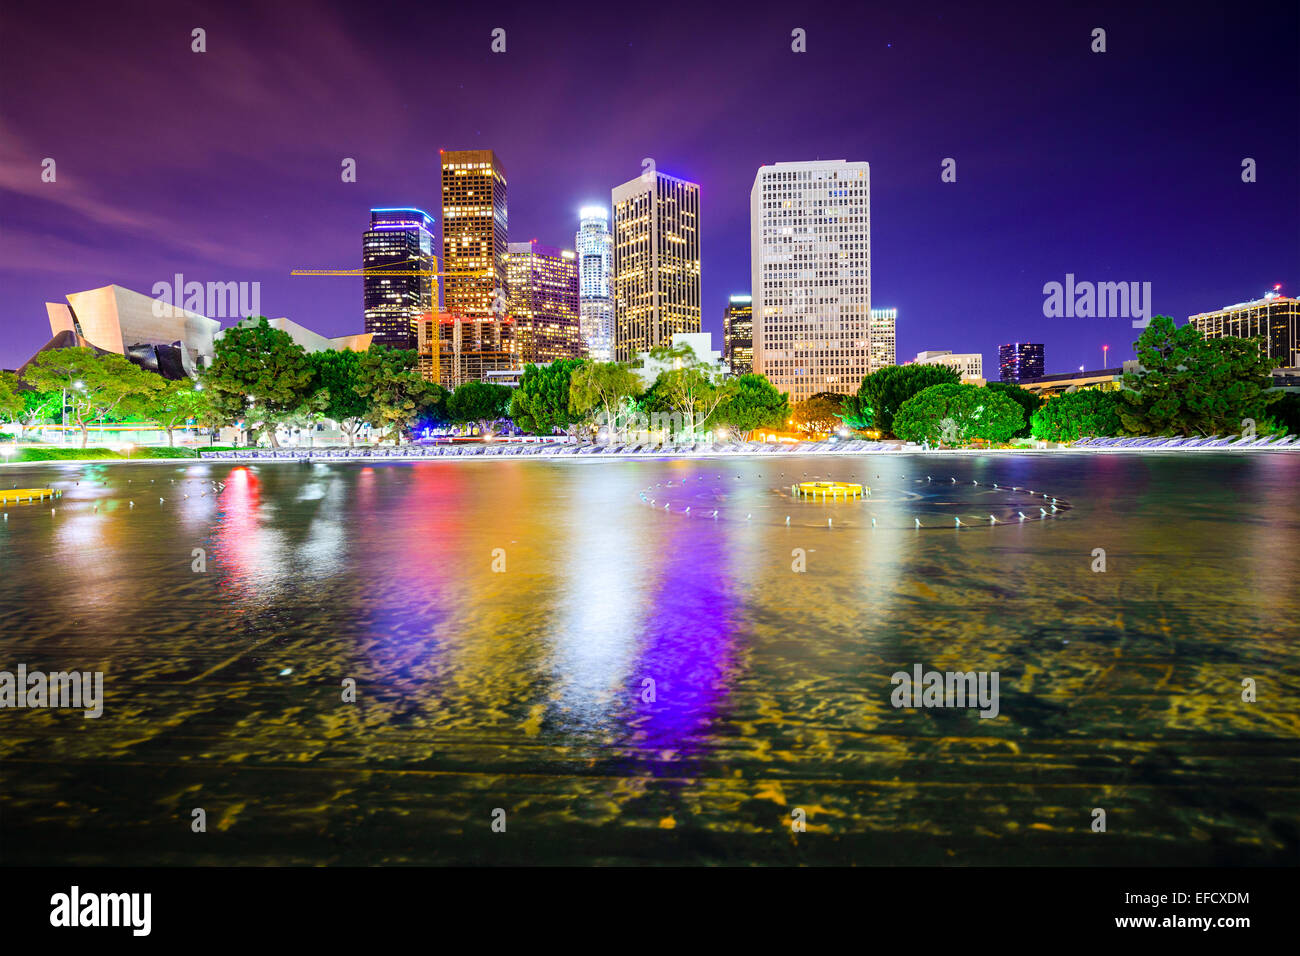 Los Angeles, California, USA downtown city skyline. - Stock Image